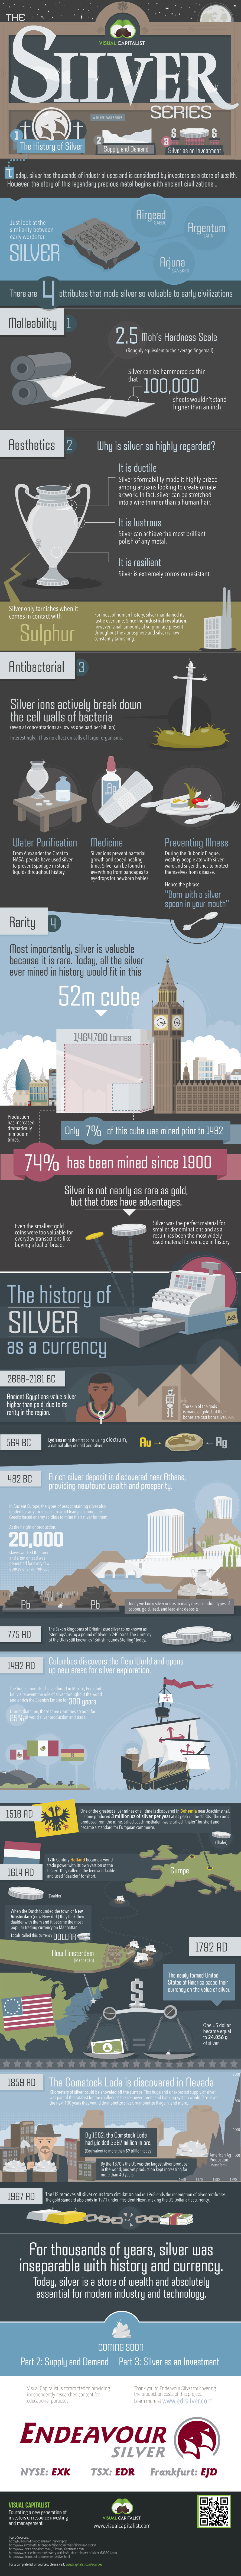 the-silver-series-the-history-of-silver_509017d261c21